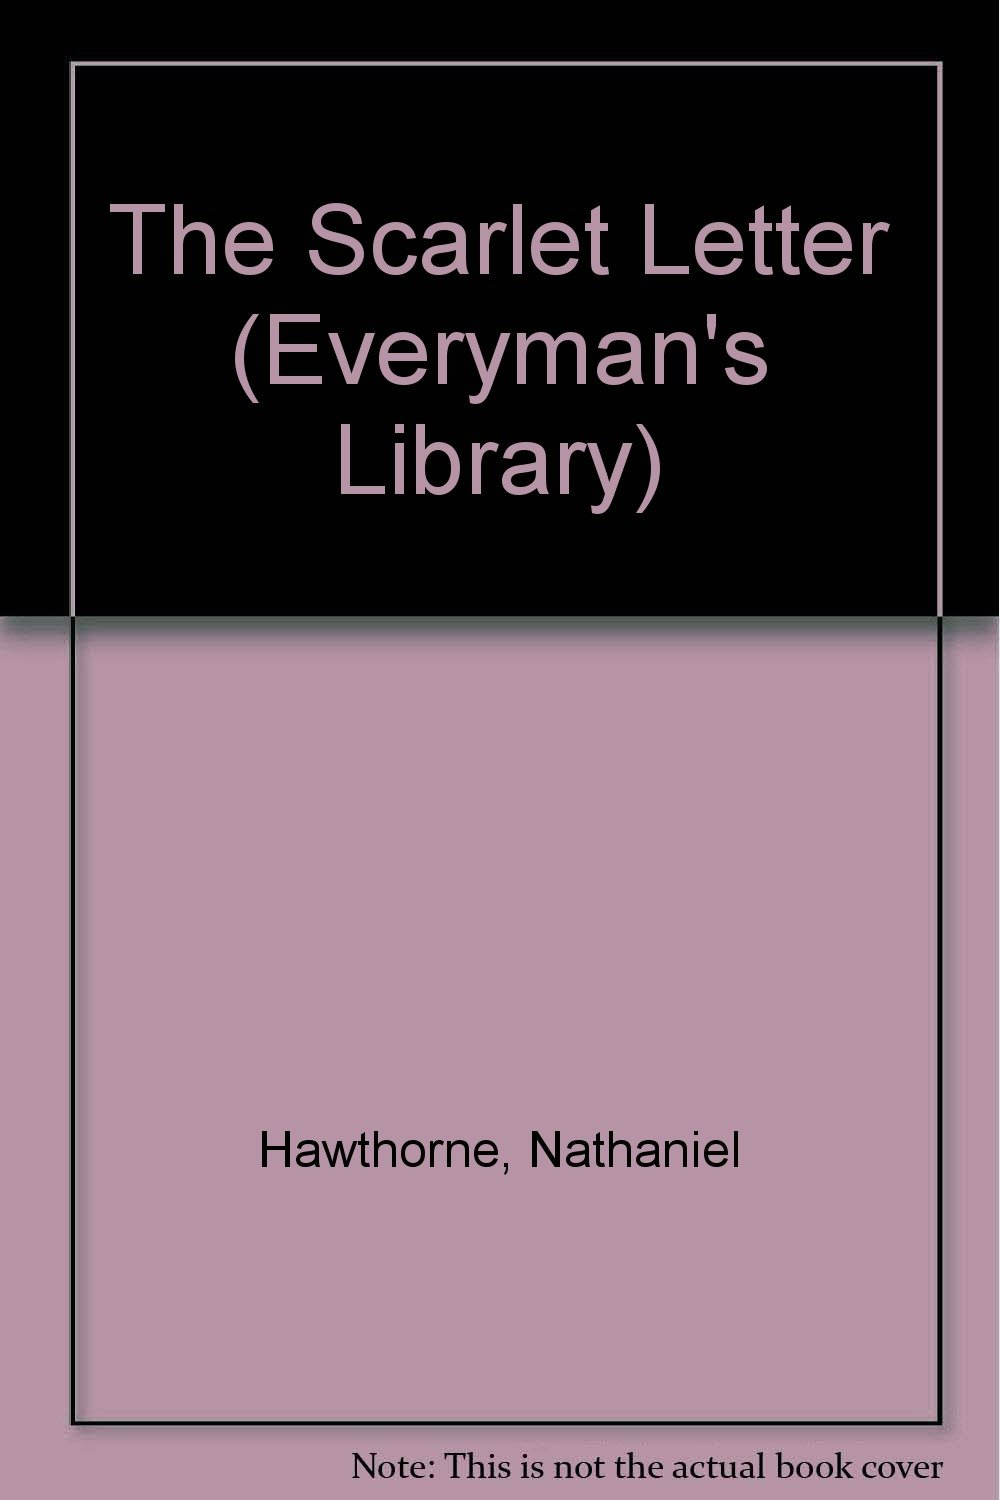 The scarlet letter everymans library amazon books madrichimfo Images